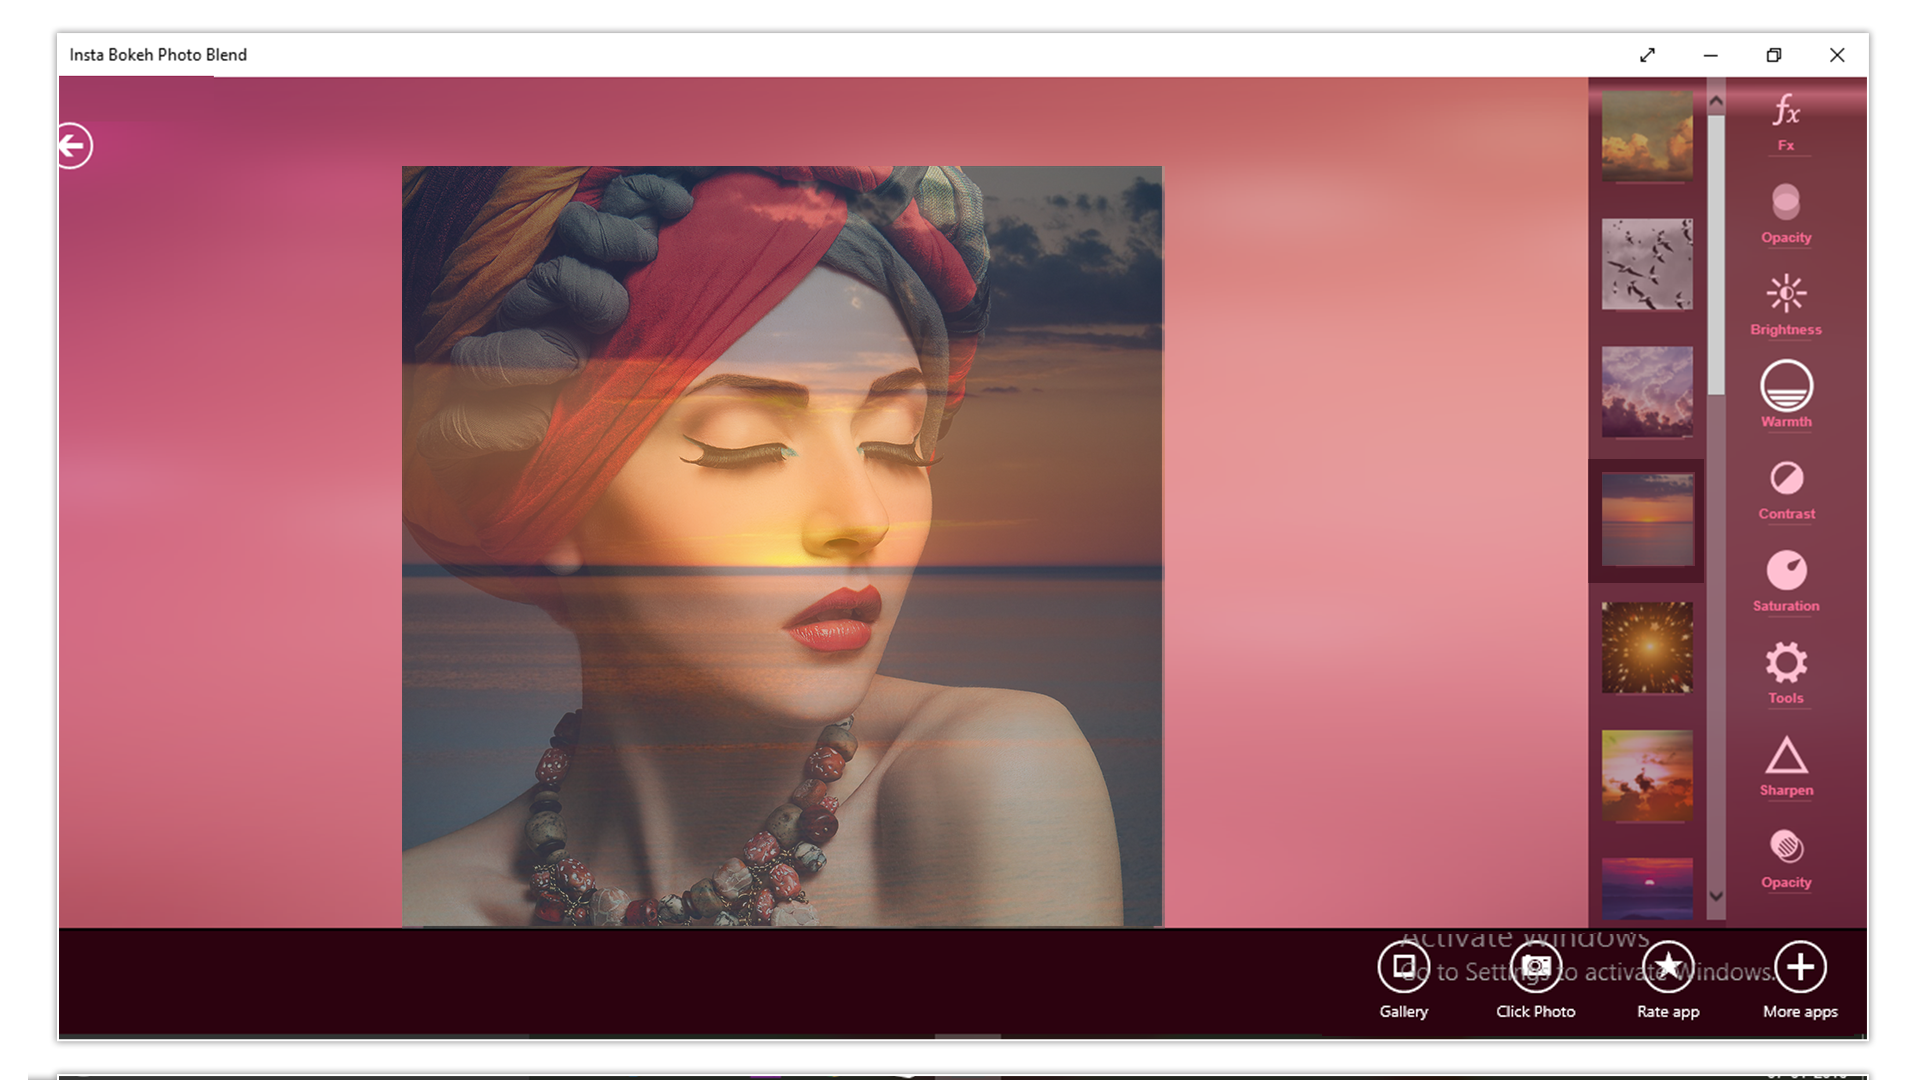 Superimpose App: Superimpose or blend two photos with ease Best app to blend photos